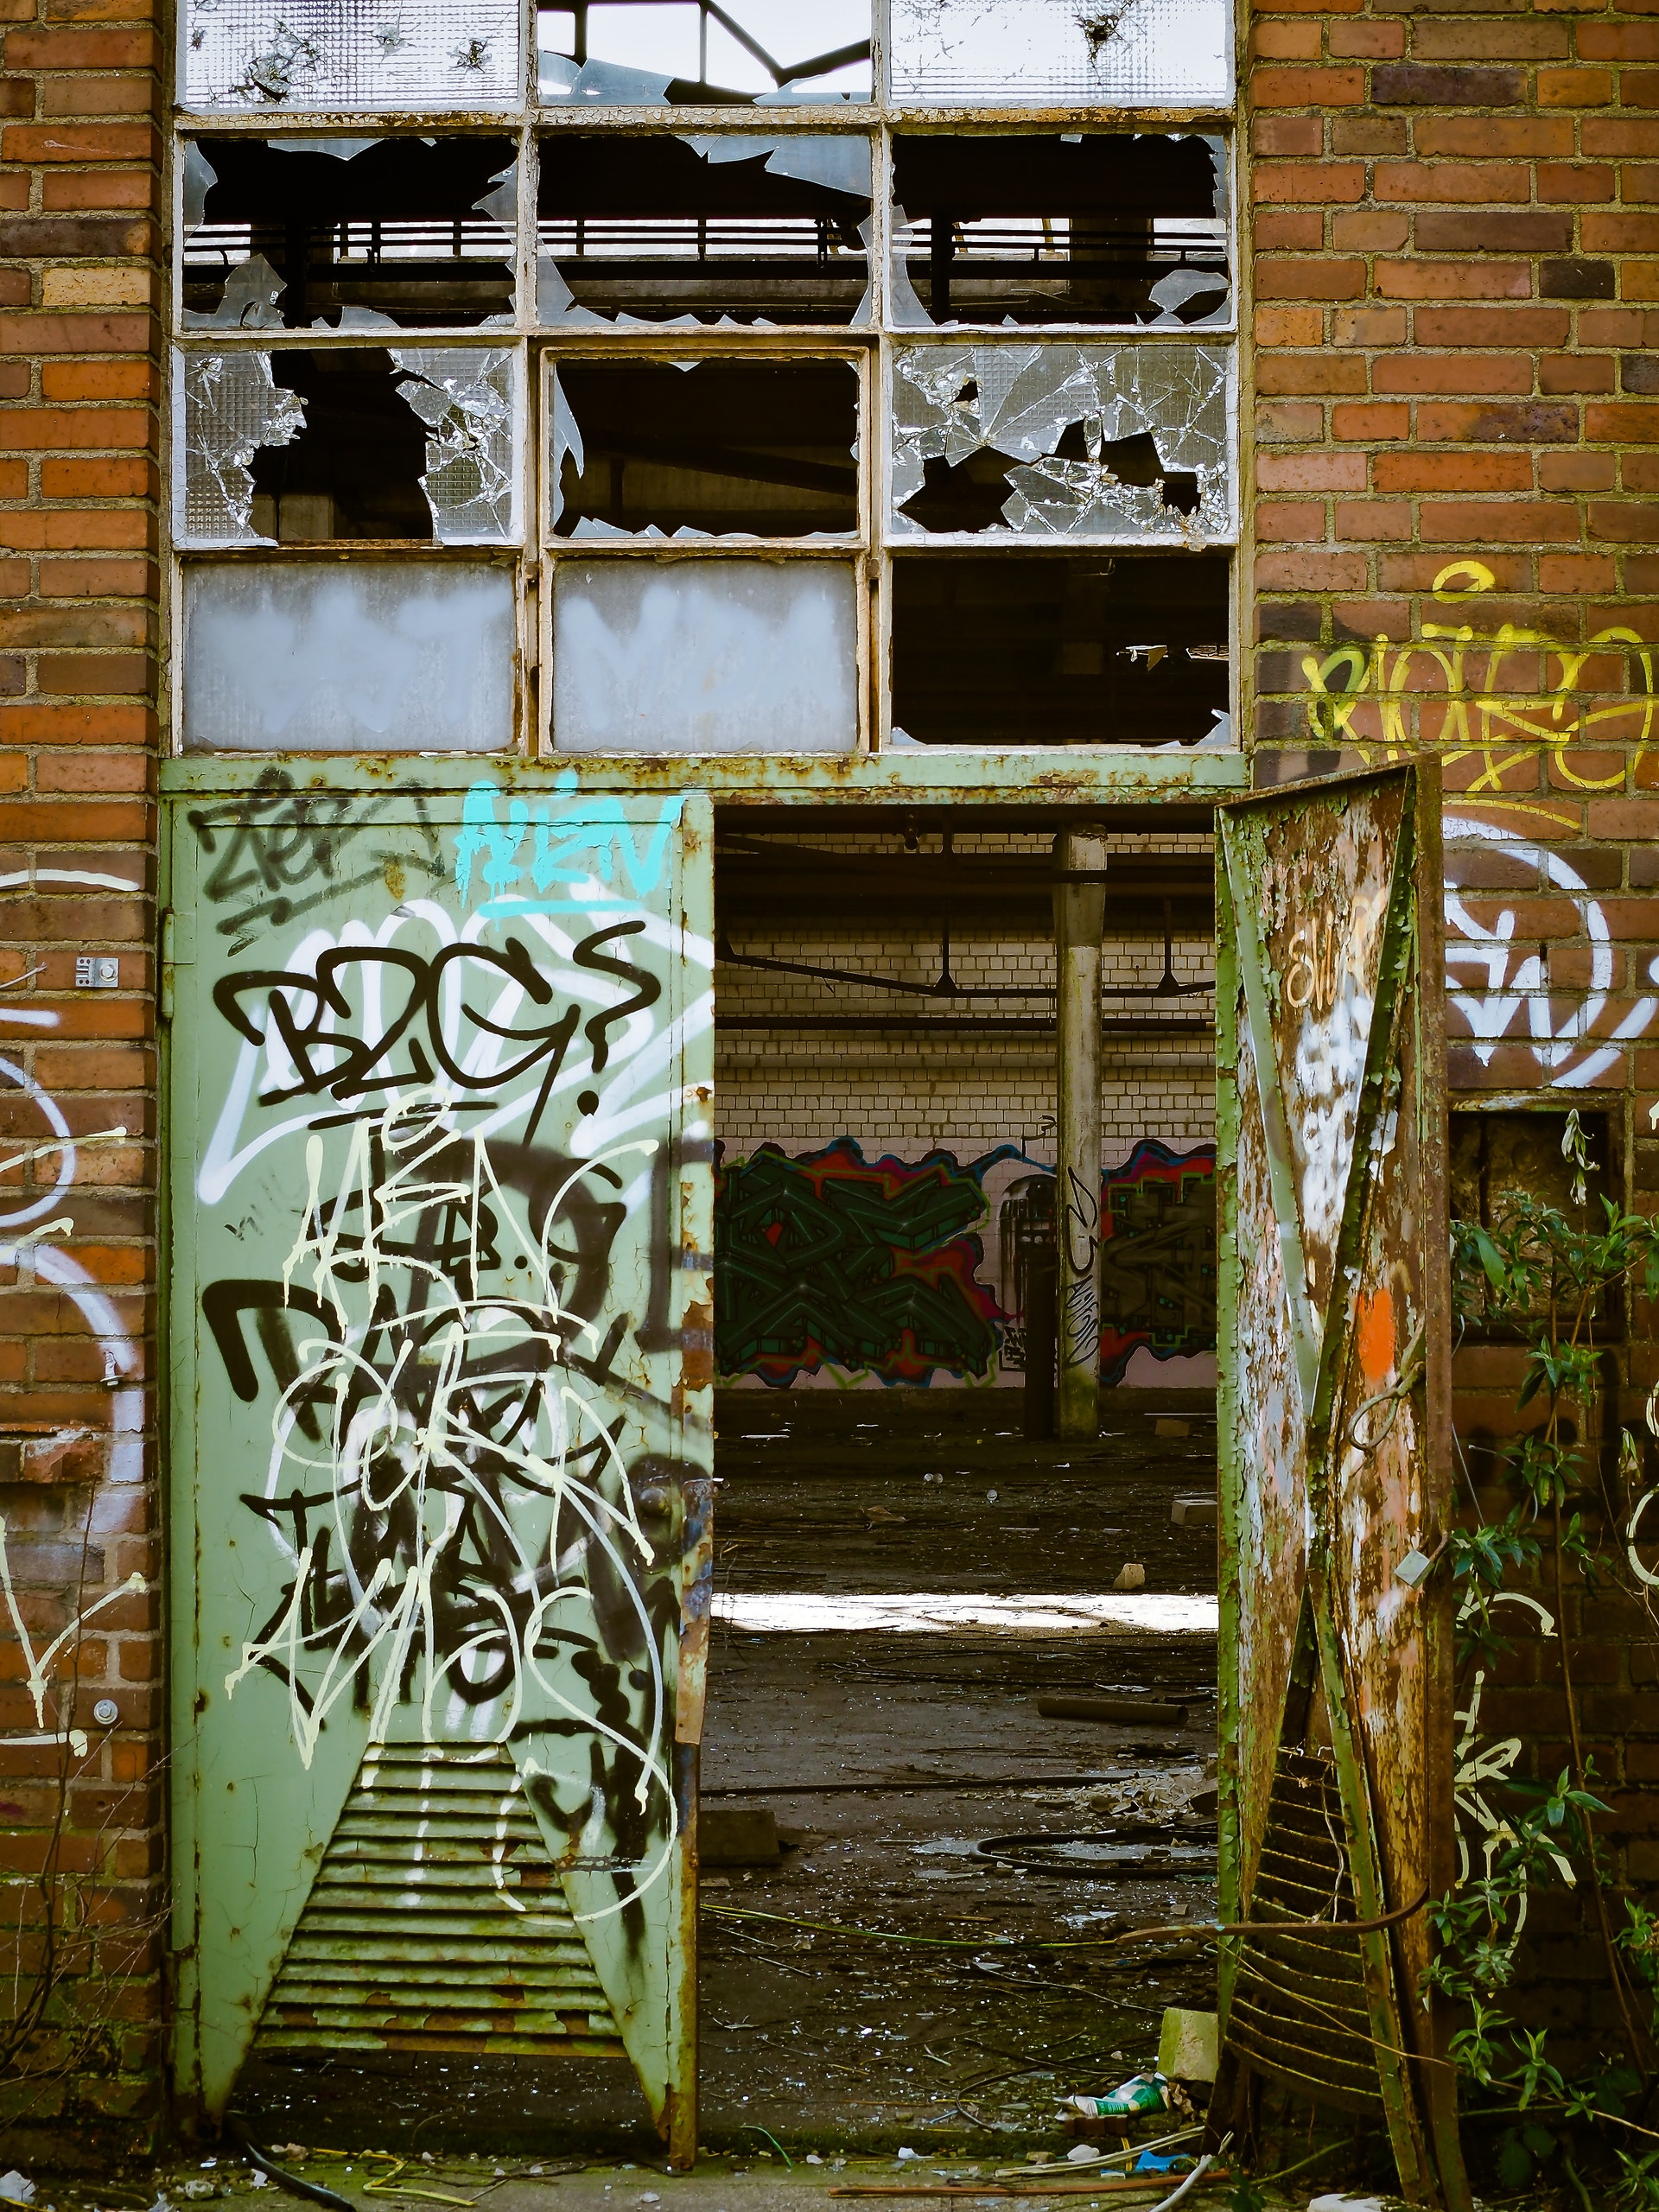 photo of building with broken windows and graffiti